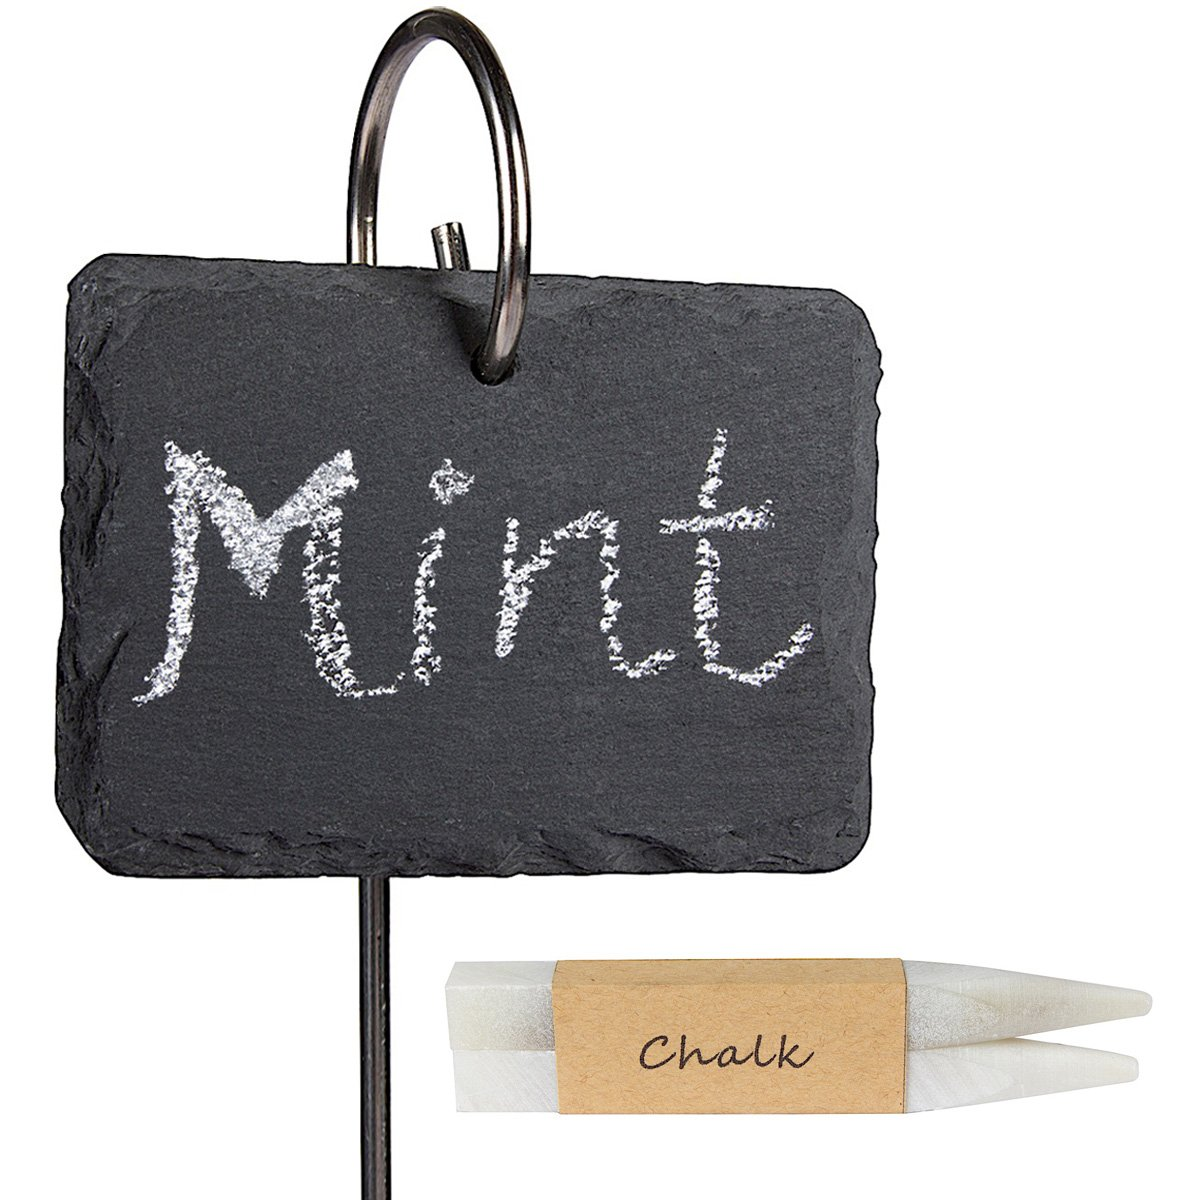 LULIND - Slate Plant Labels, Stainless Steel Stakes and 2 Chalk Pencils (15 Pack) by LULIND